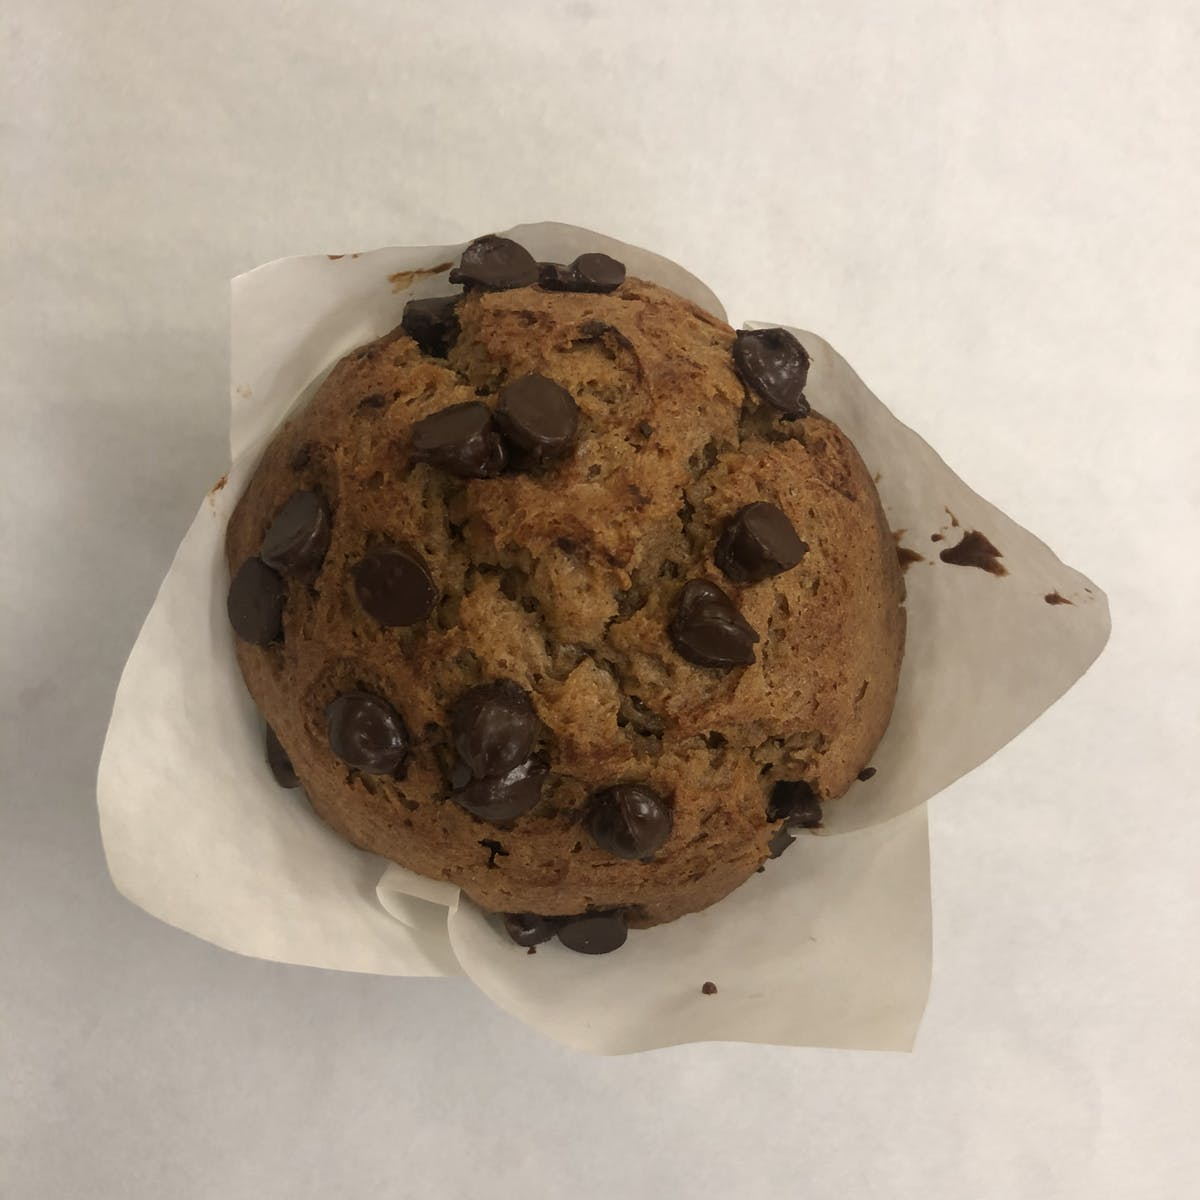 a muffin with chocolate chips